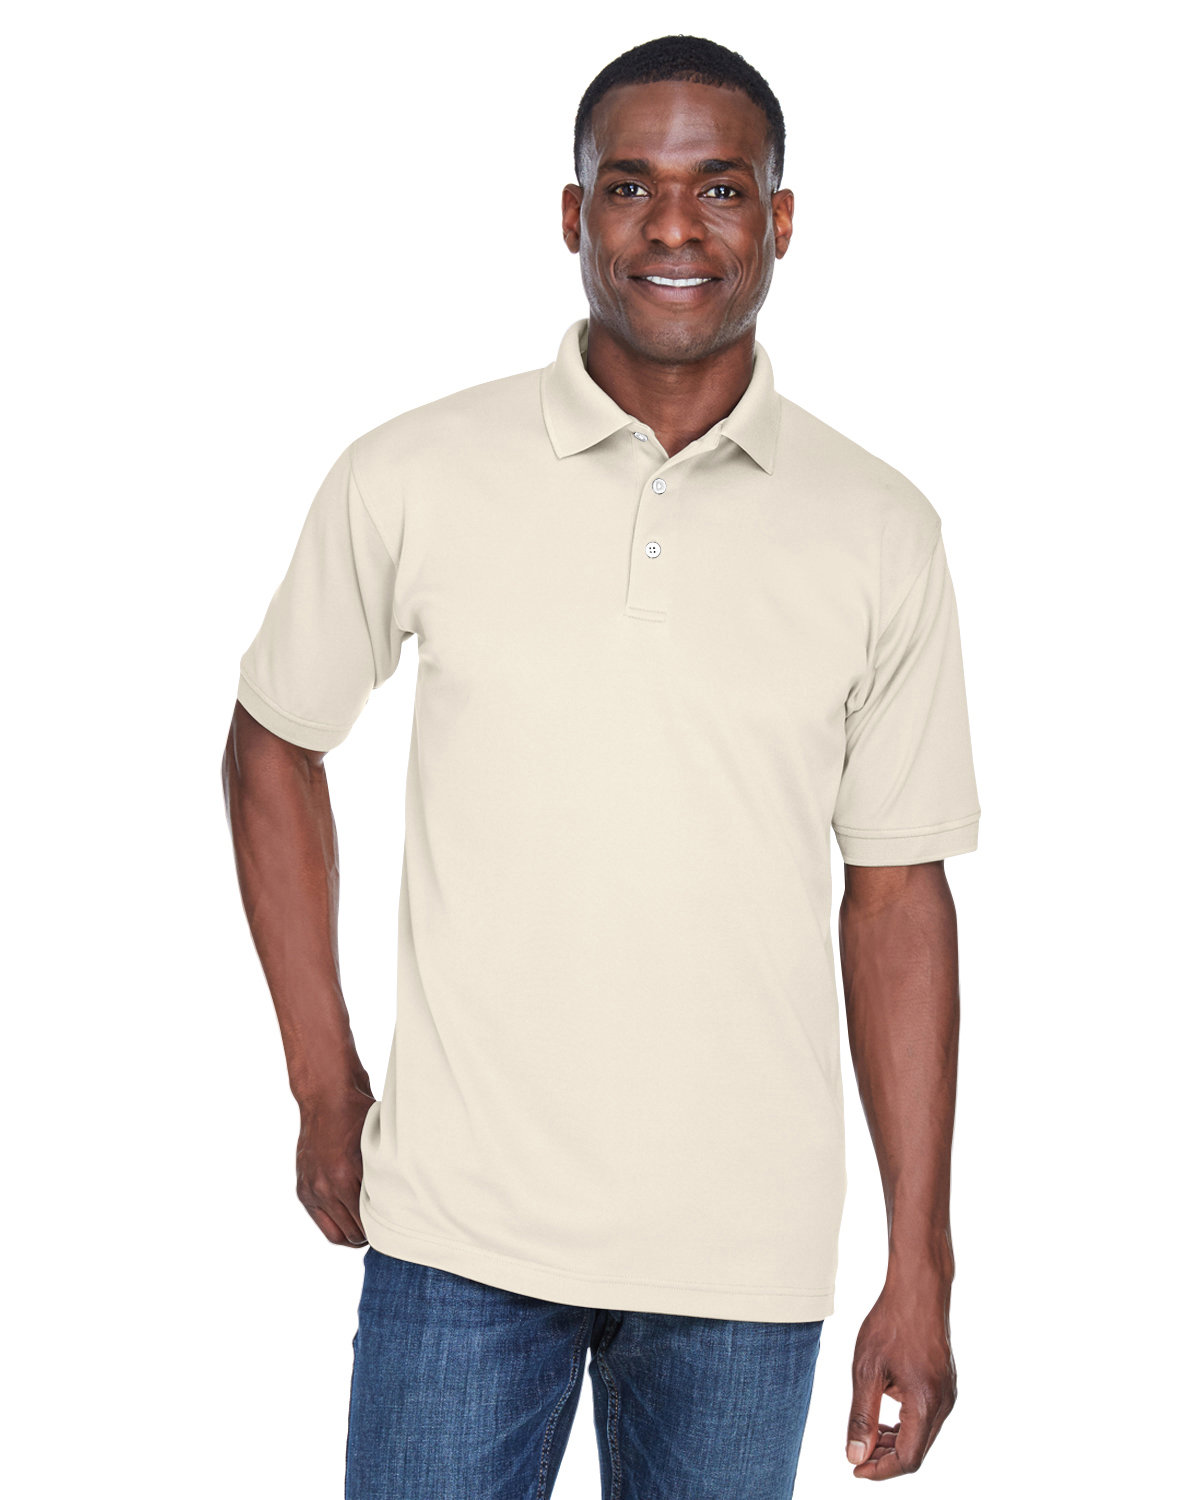 UltraClub Men's PlatinumPerformance Piqué Polo with TempControl Technology STONE